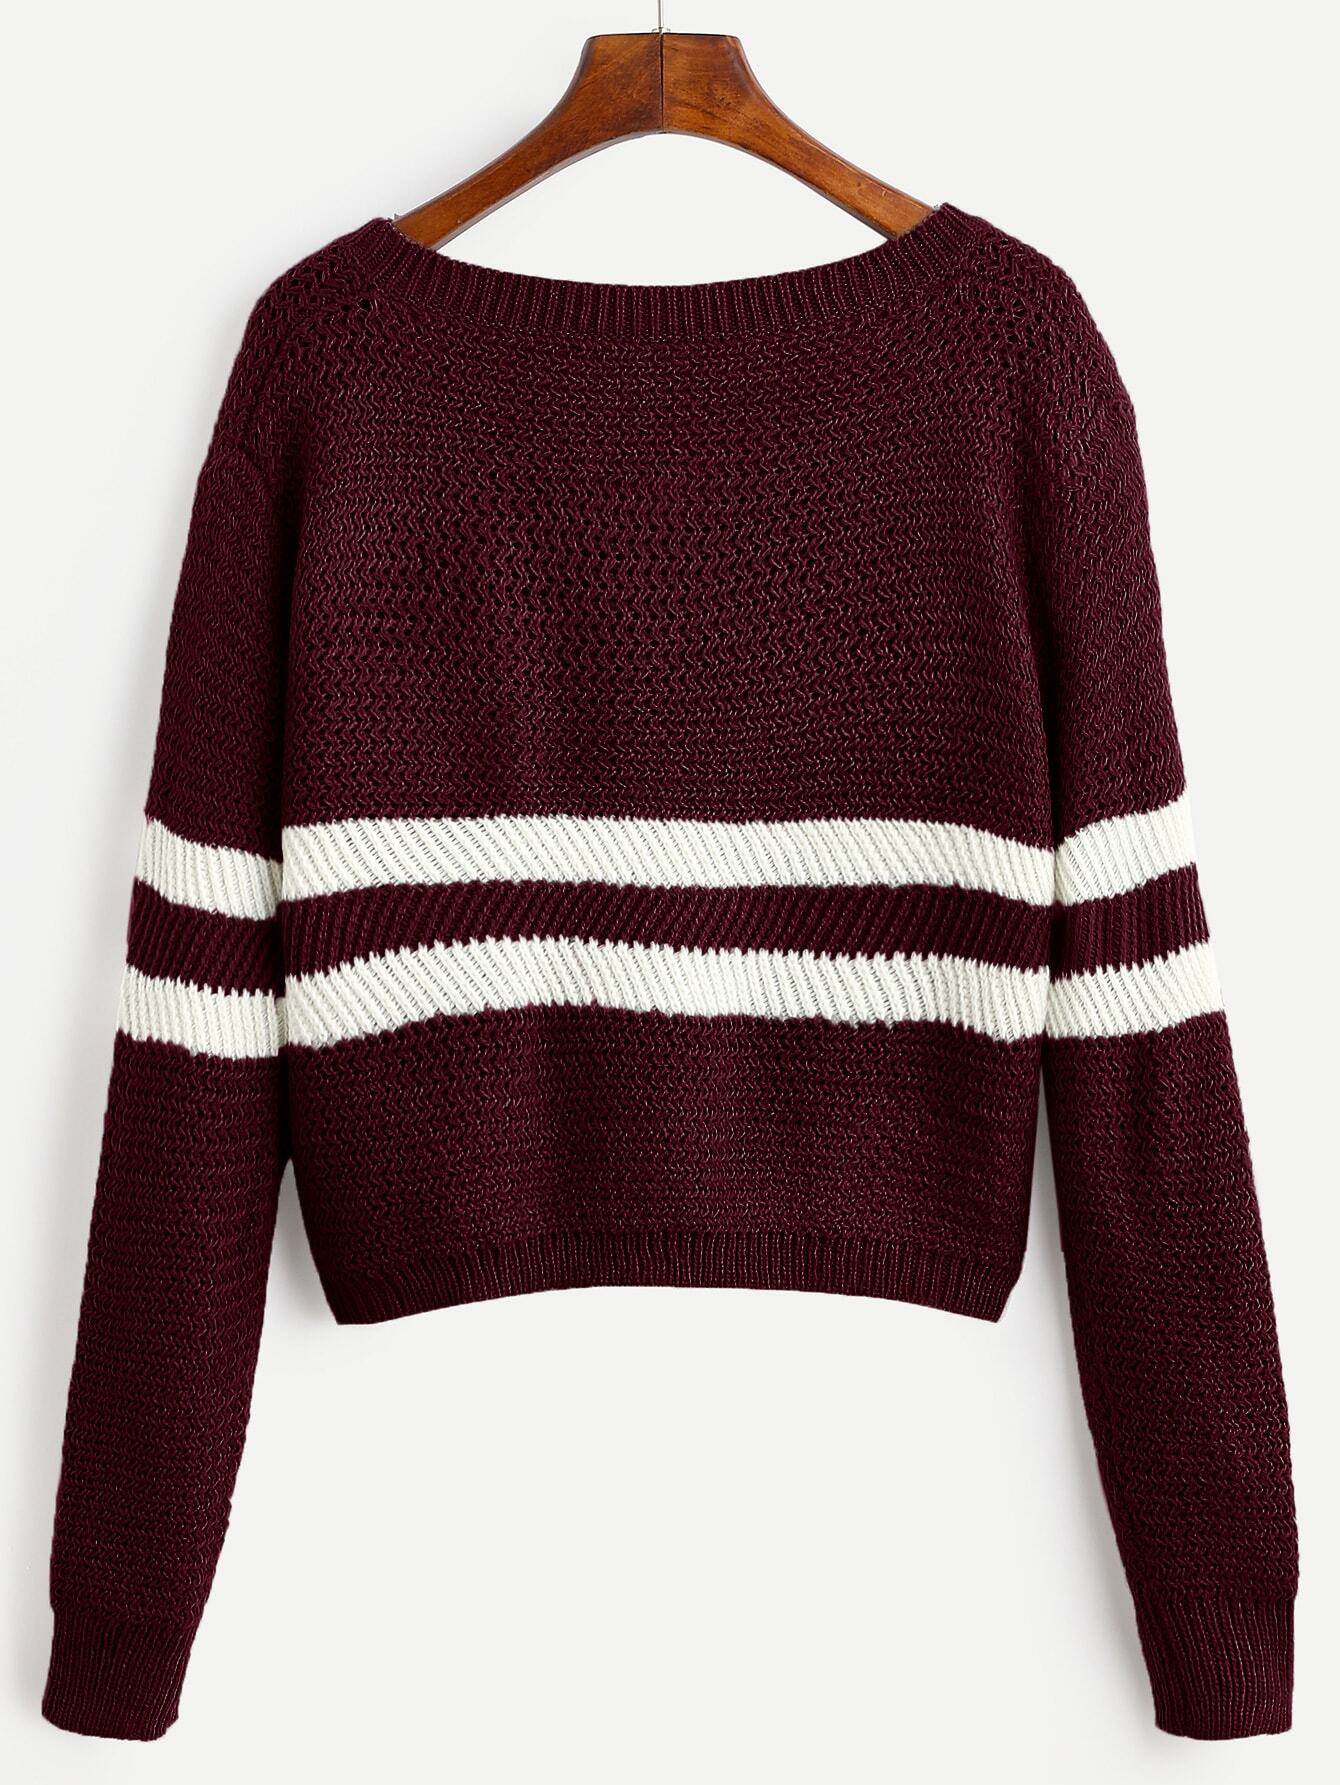 Blue and burgundy striped mens sweaters